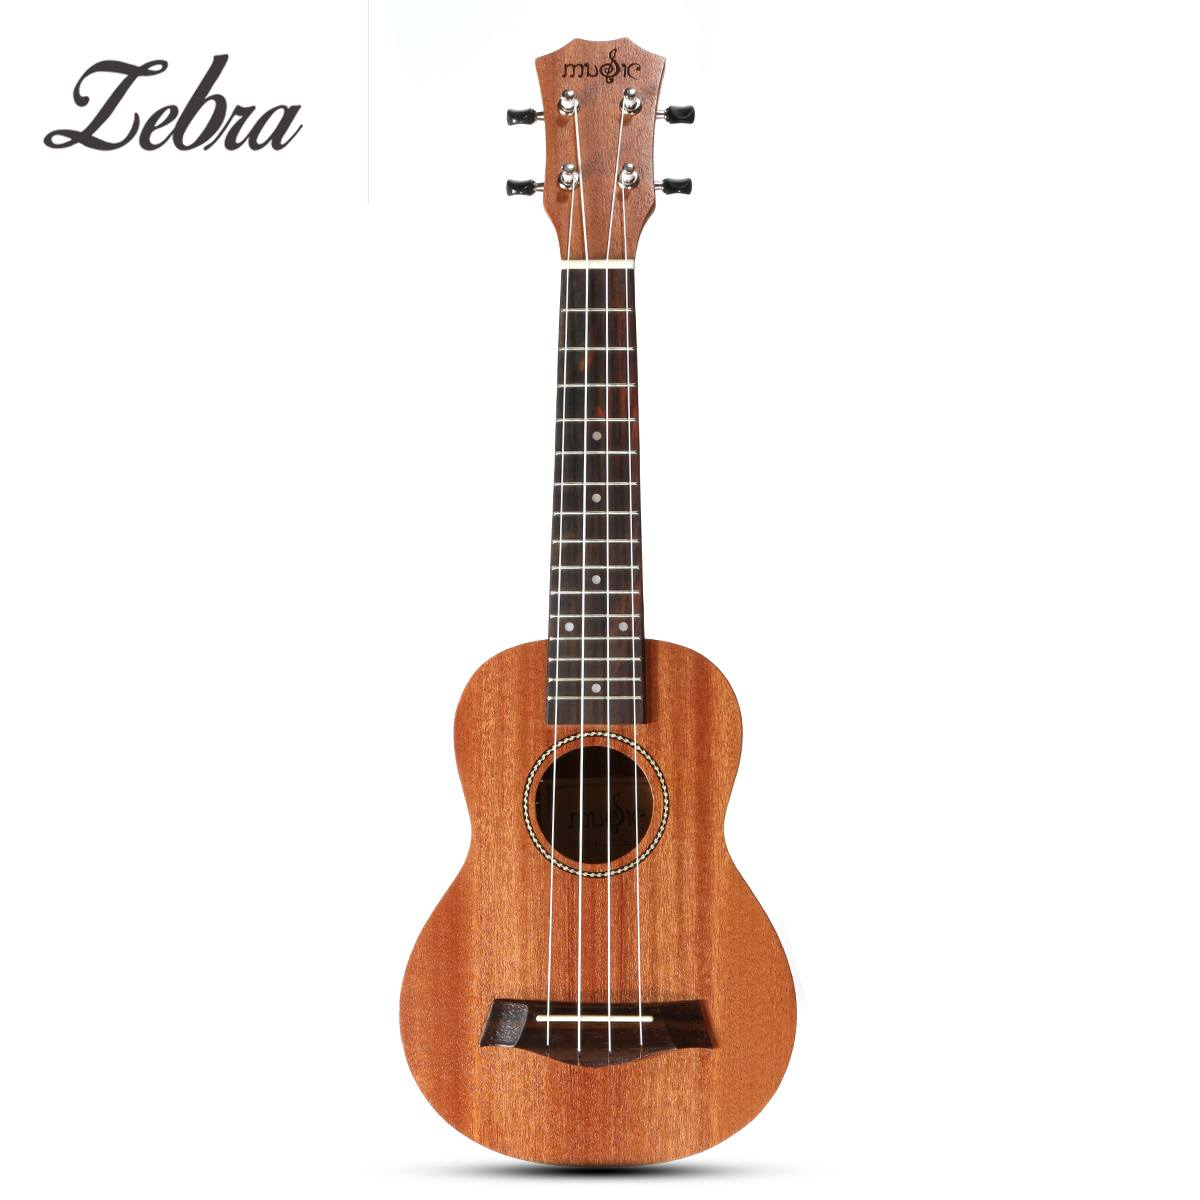 Zebra 21''Ukulele 15 Frets Mahogany Concert Ukulele 4 Strings Rosewood Fingerboard Guitar For Stringed Musical Instruments